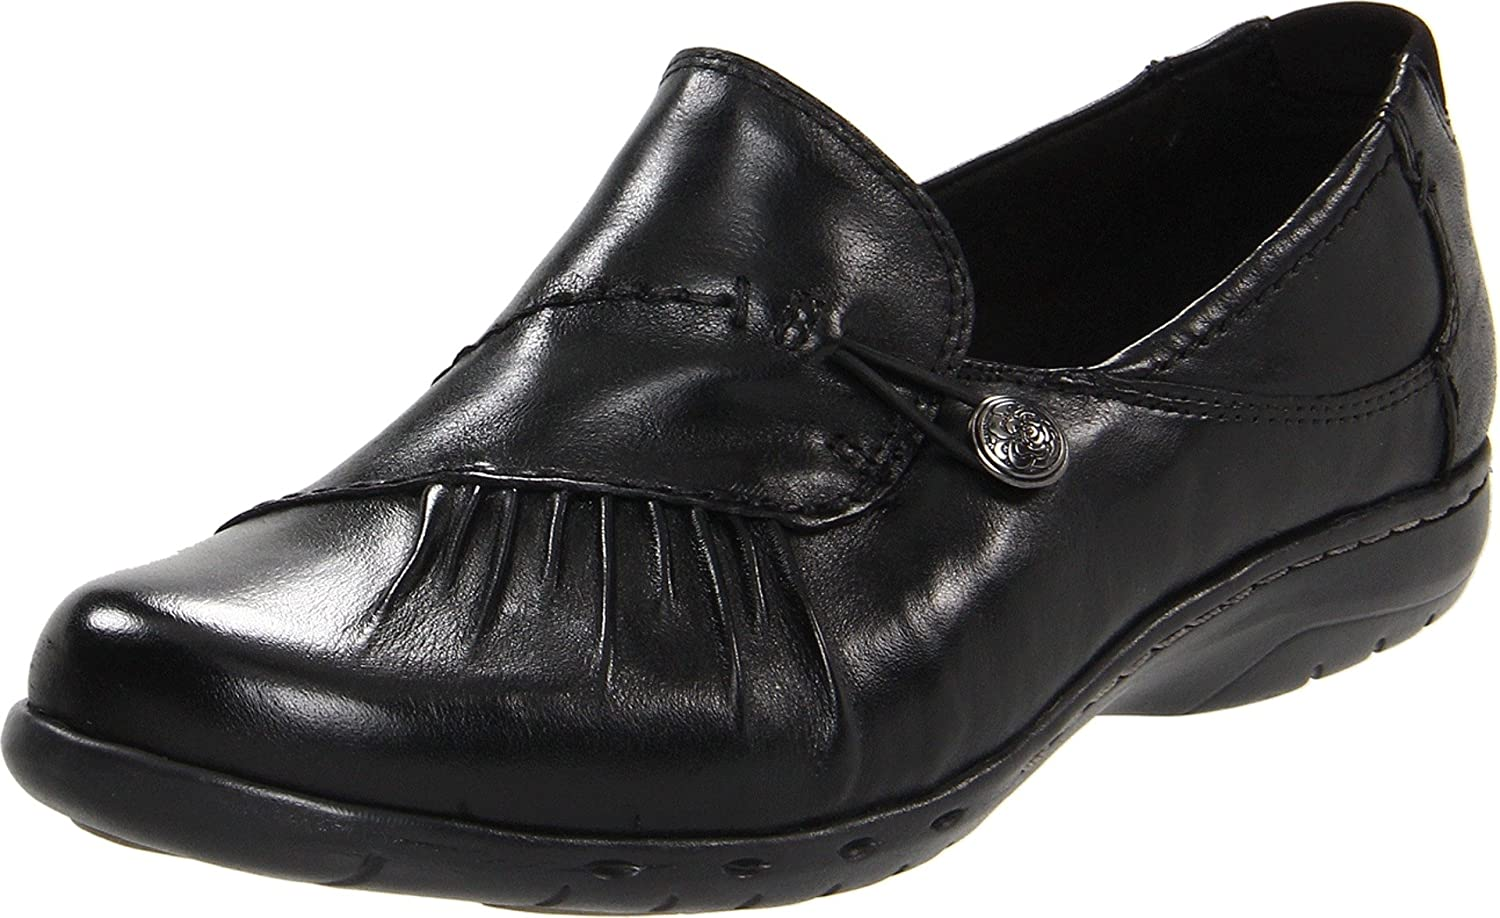 Black Rockport Cobb Hill Women's Paulette Flat